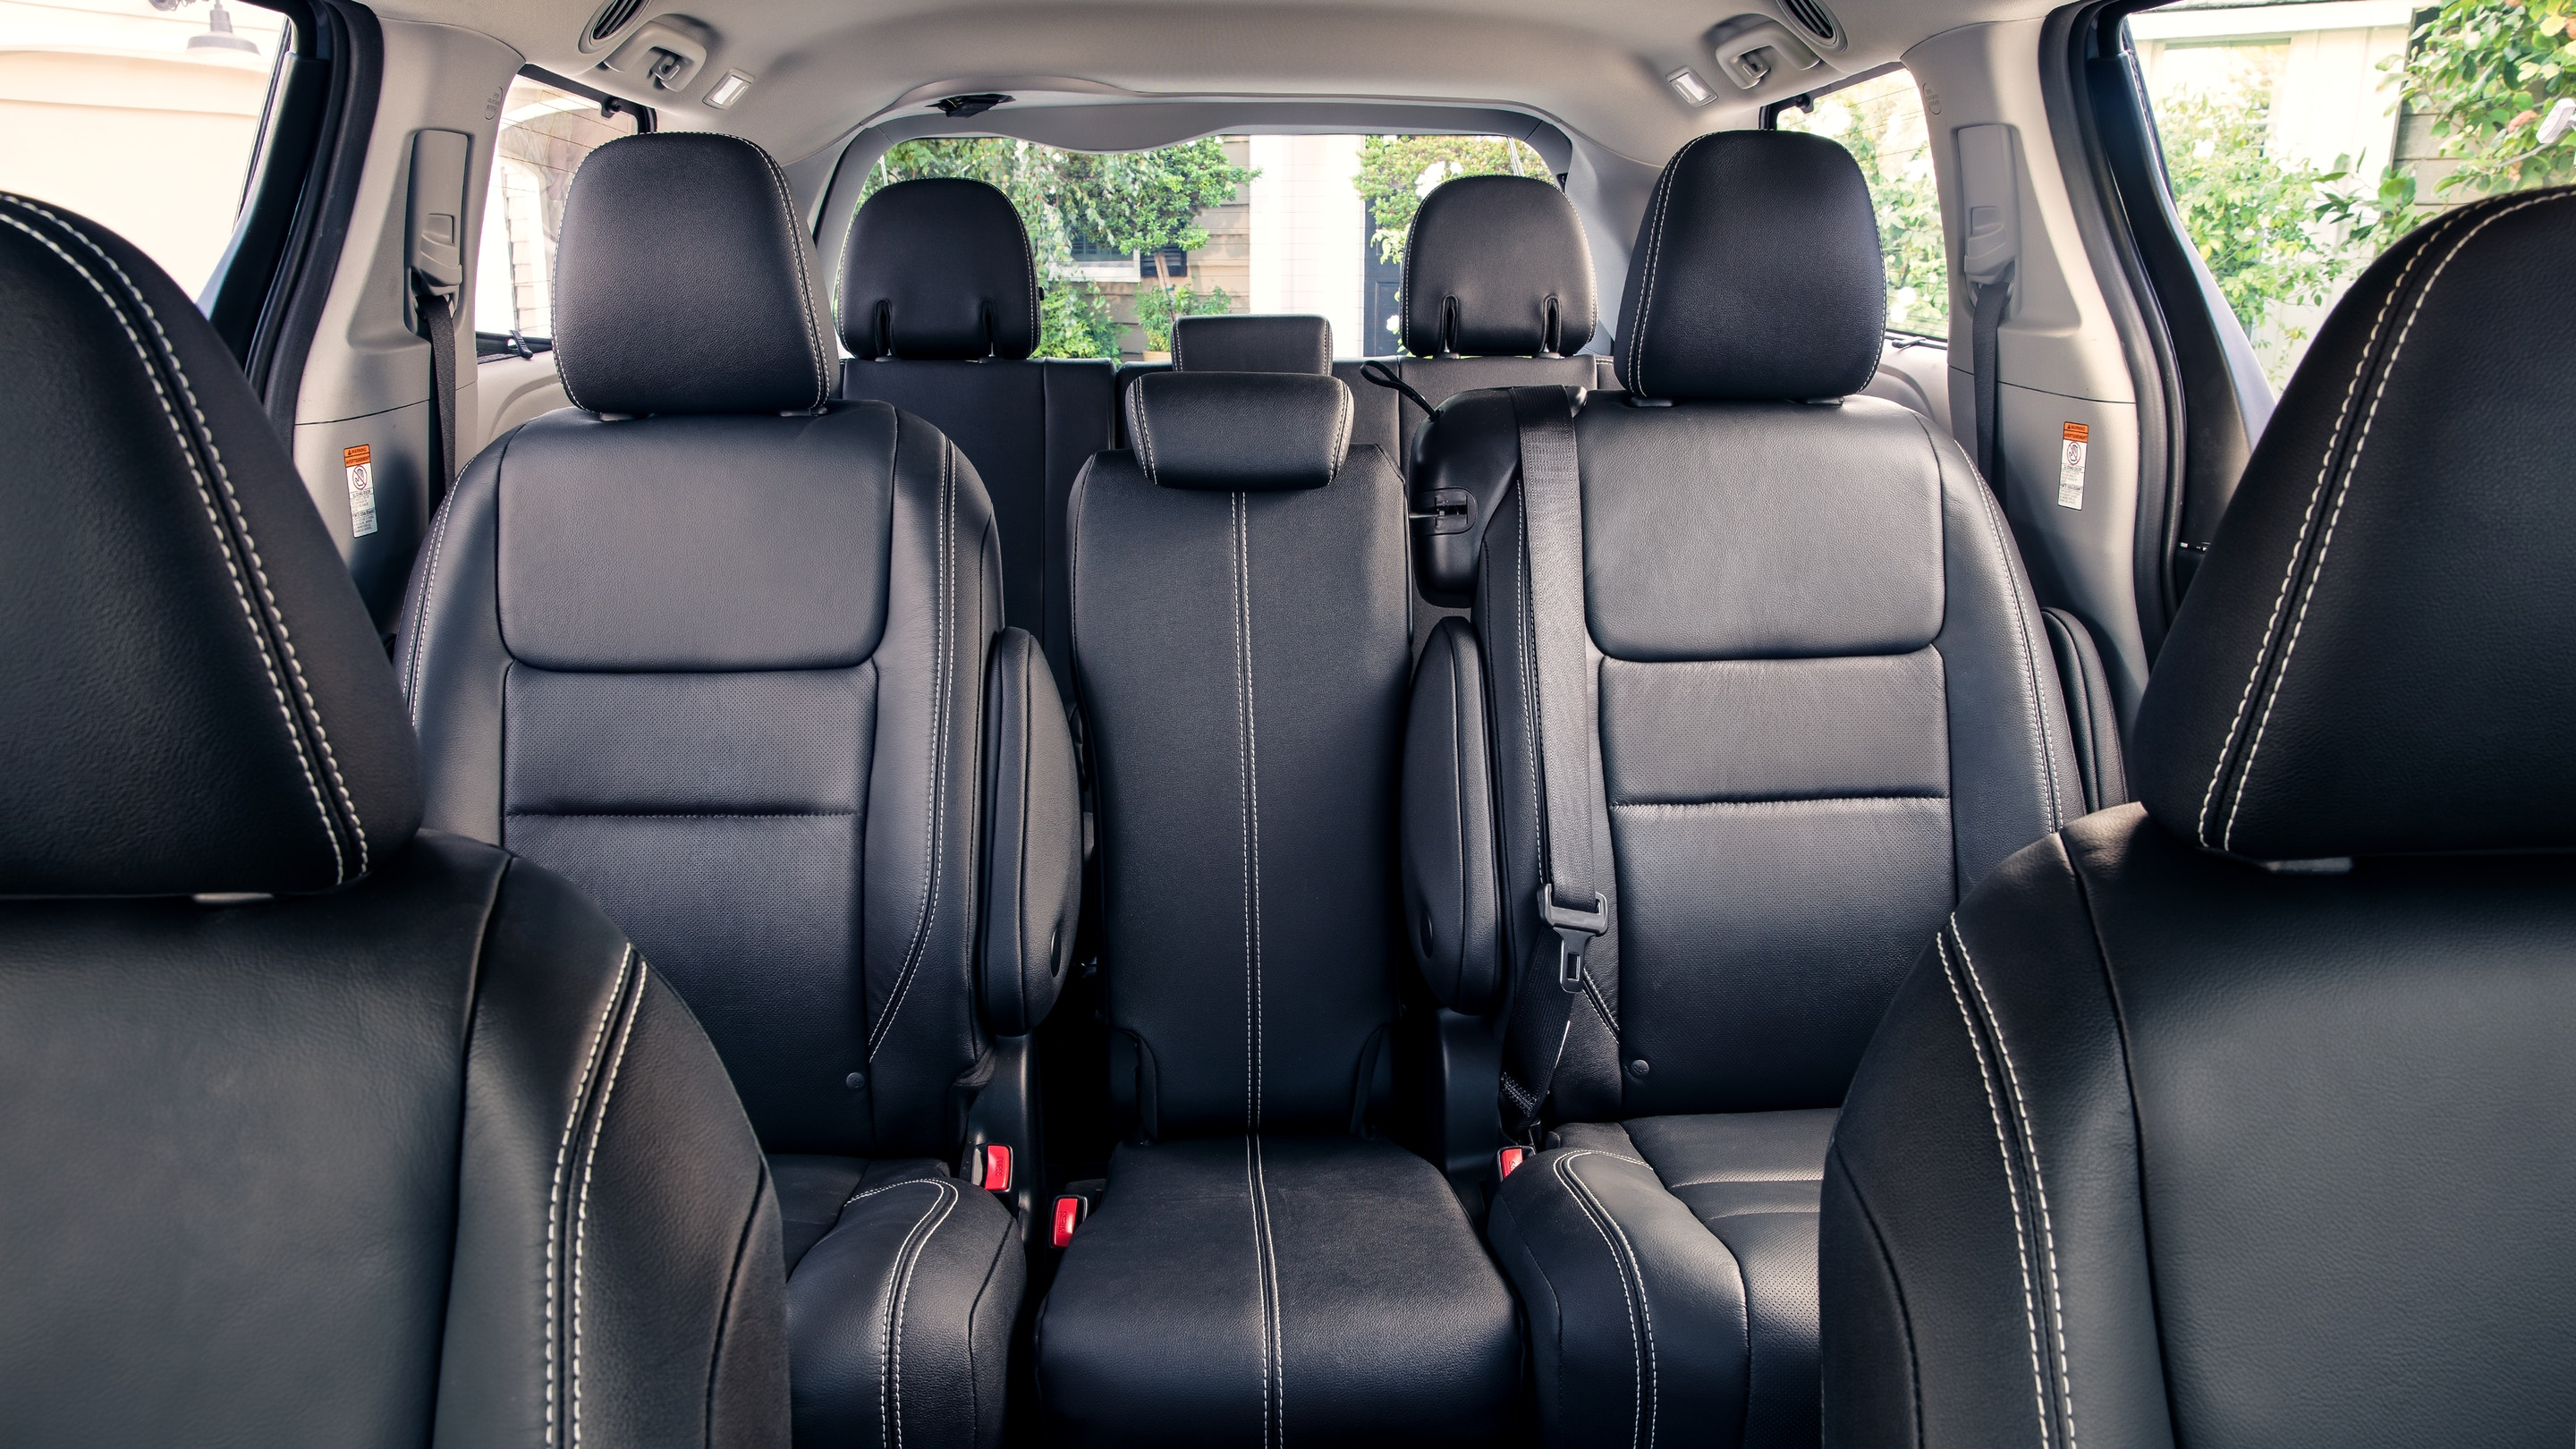 Spacious Interior of the 2020 Sienna